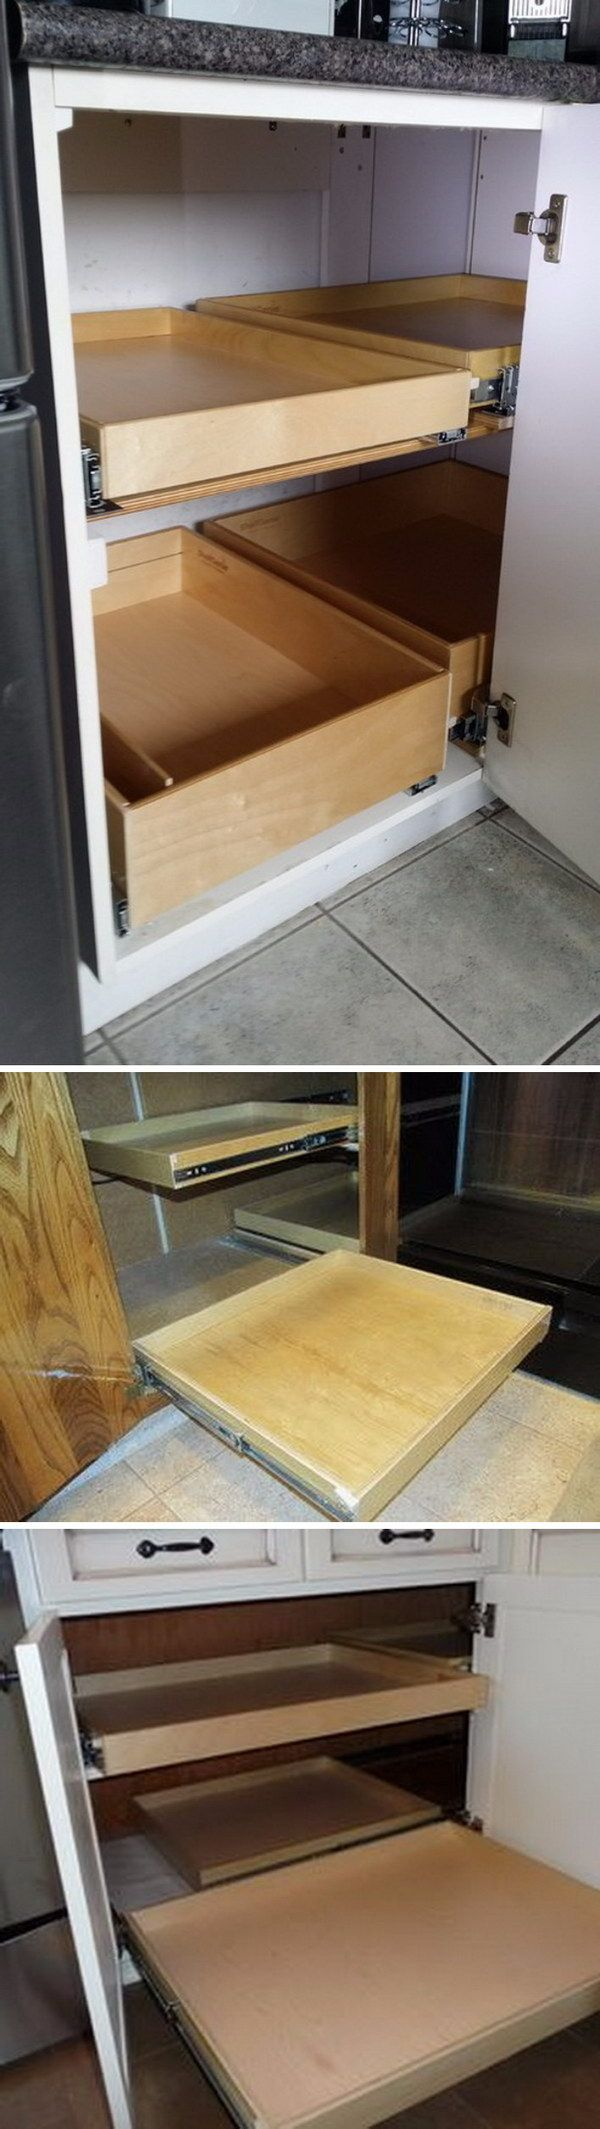 Best Blind Corner Cabinet Solution Makes It Much Easier To 400 x 300